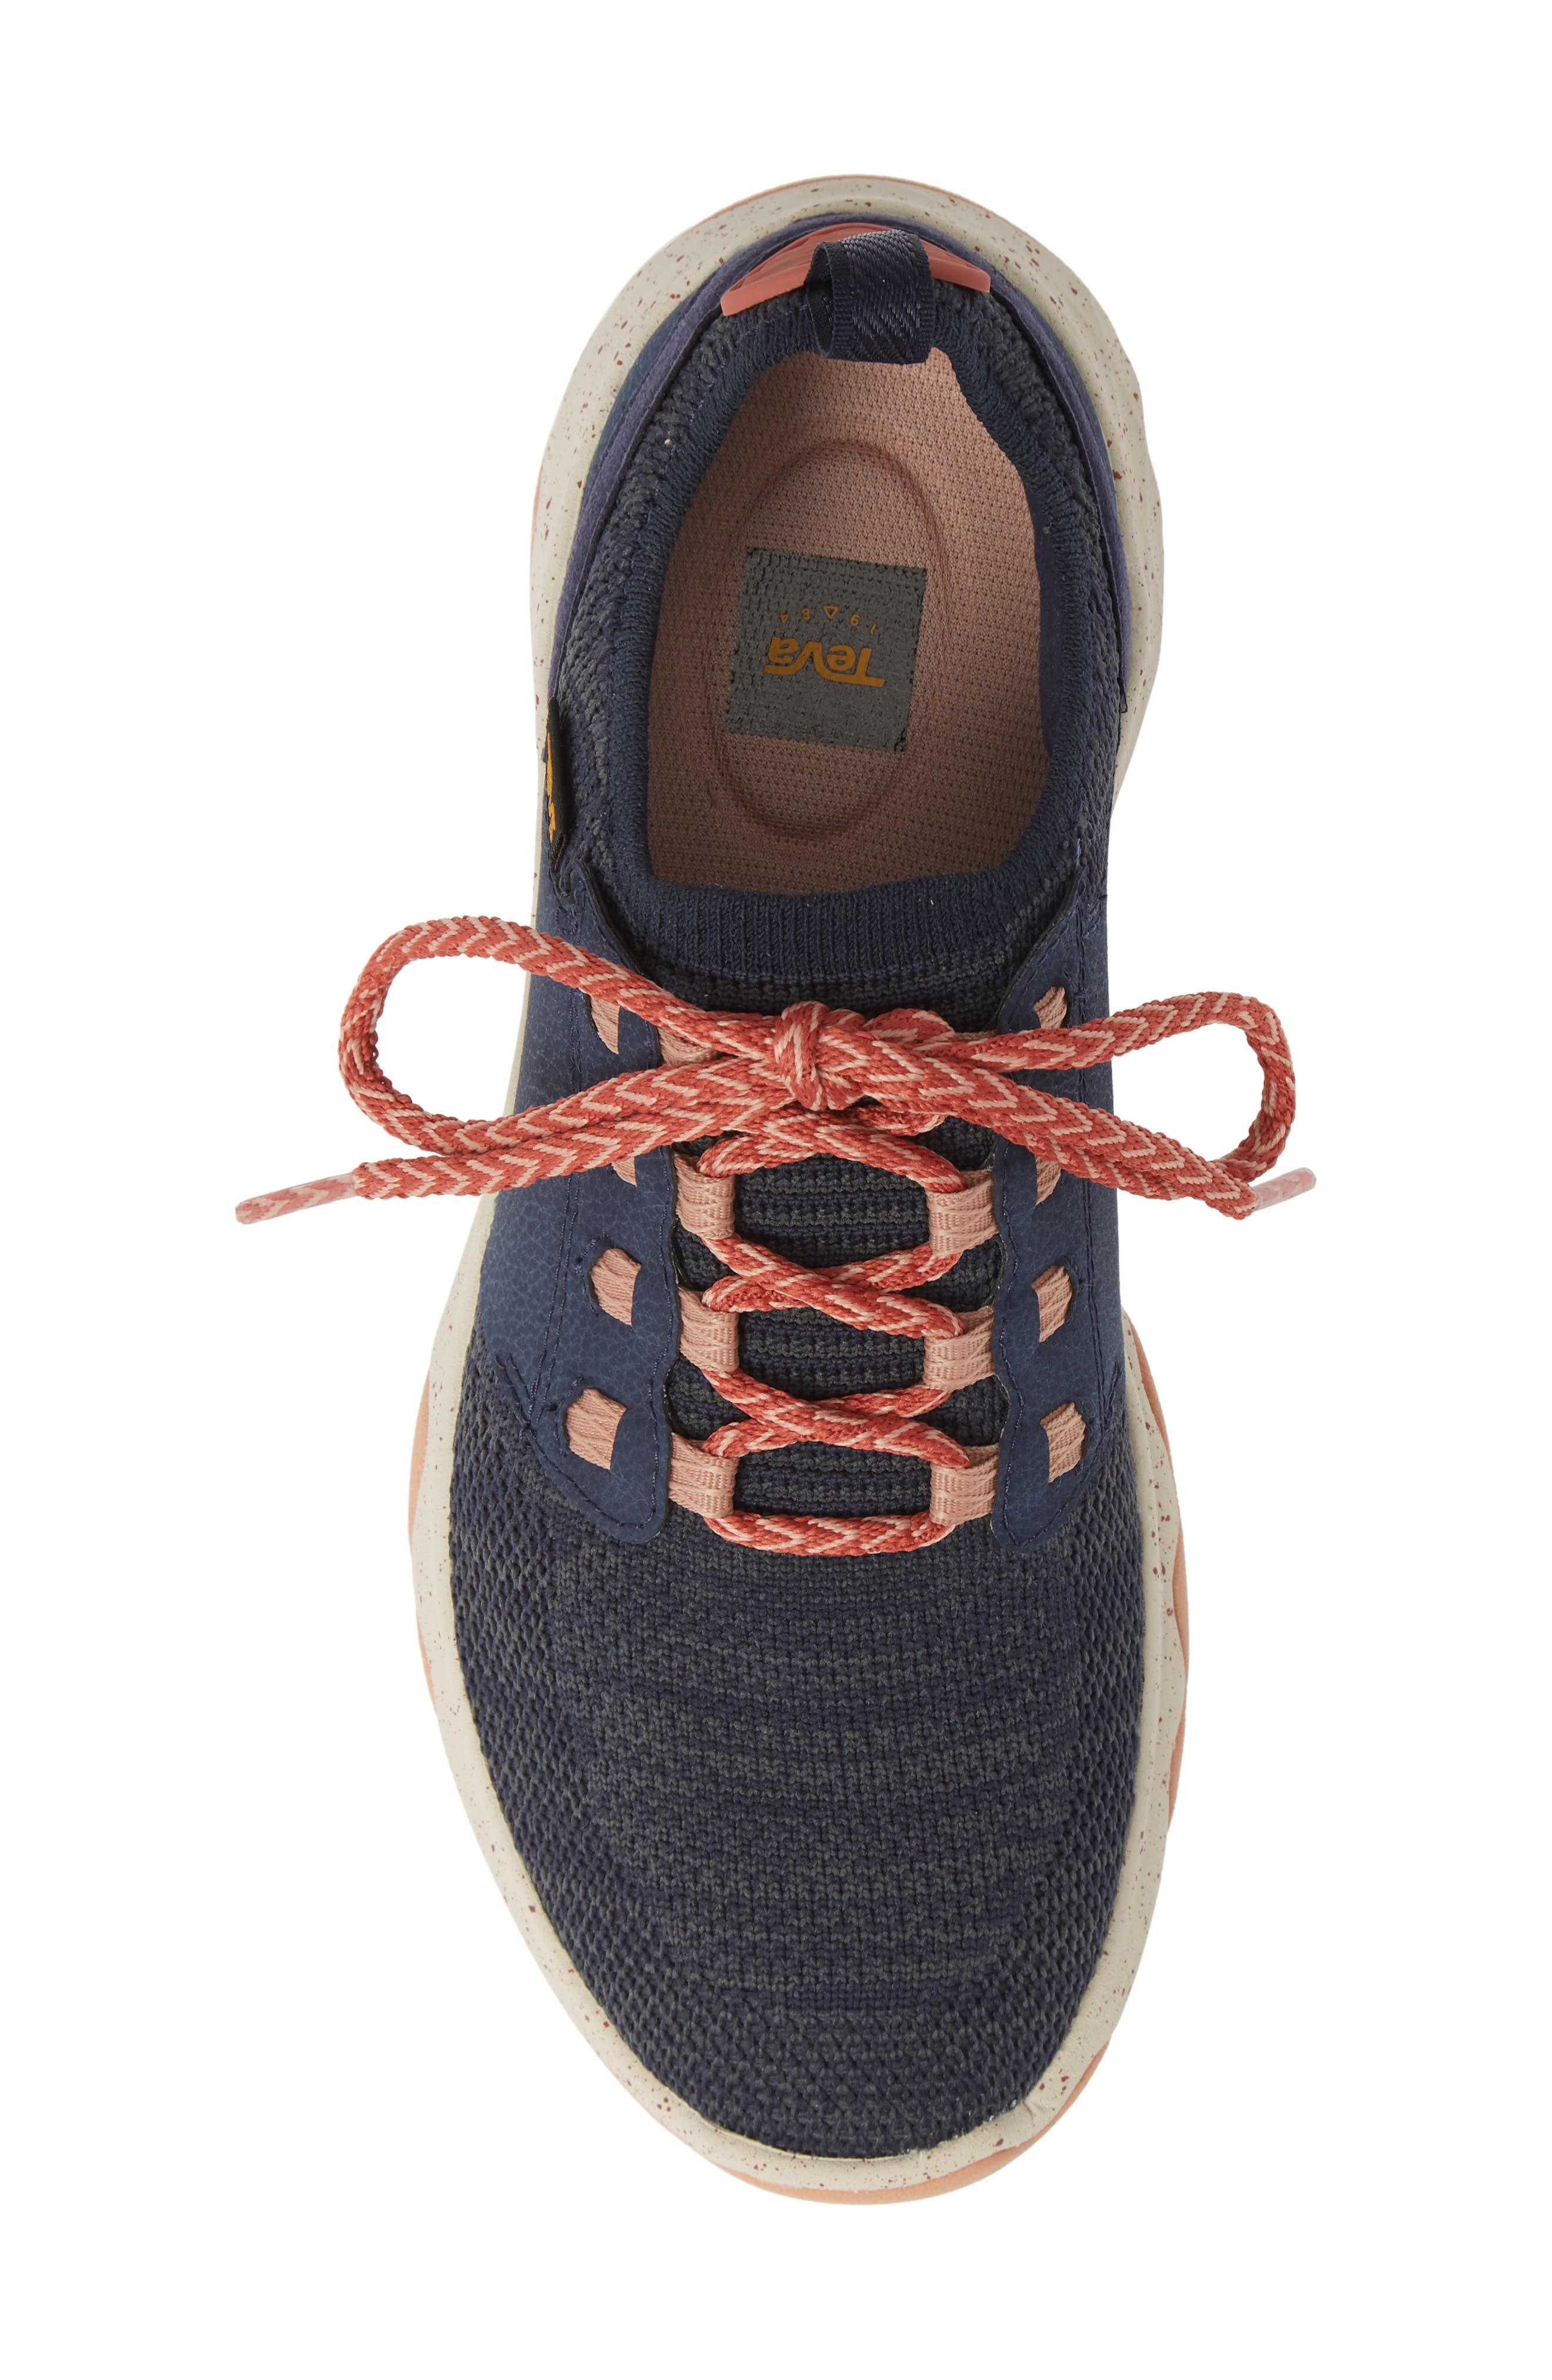 Arrowood 2 Waterproof Knit Sneaker,                             Alternate thumbnail 5, color,                             MIDNIGHT NAVY FABRIC